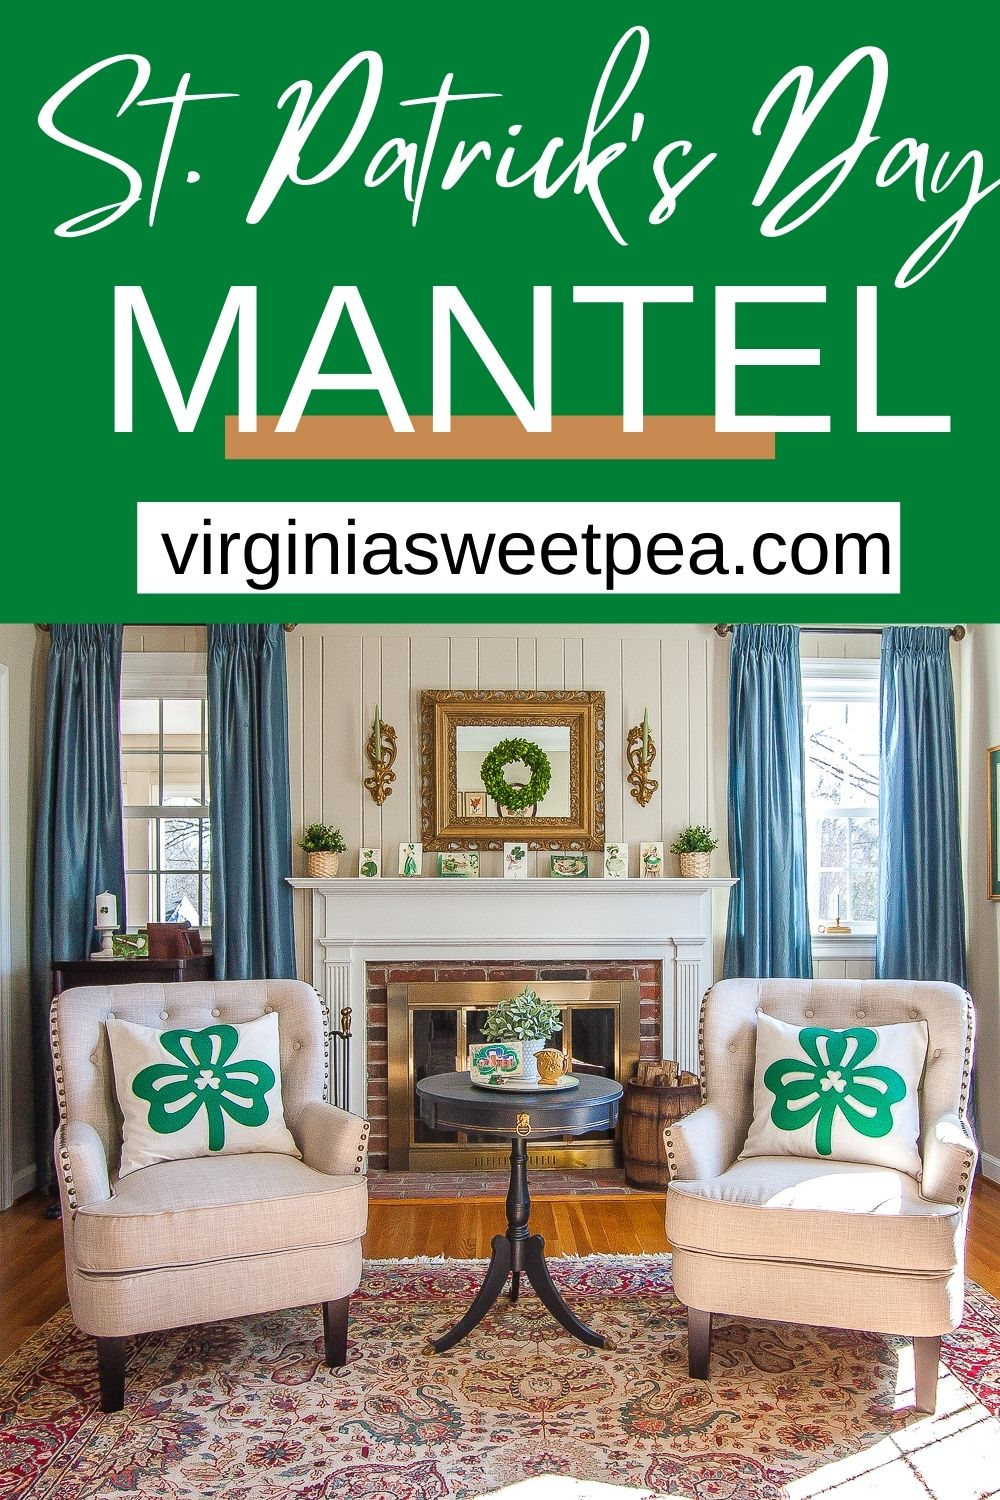 Decorate for March with a St. Patrick's Day theme.  See a St. Patrick's Day mantel decorated with vintage St. Patrick's Day postcards, a green wreath and plants, and green candles. via @spaula